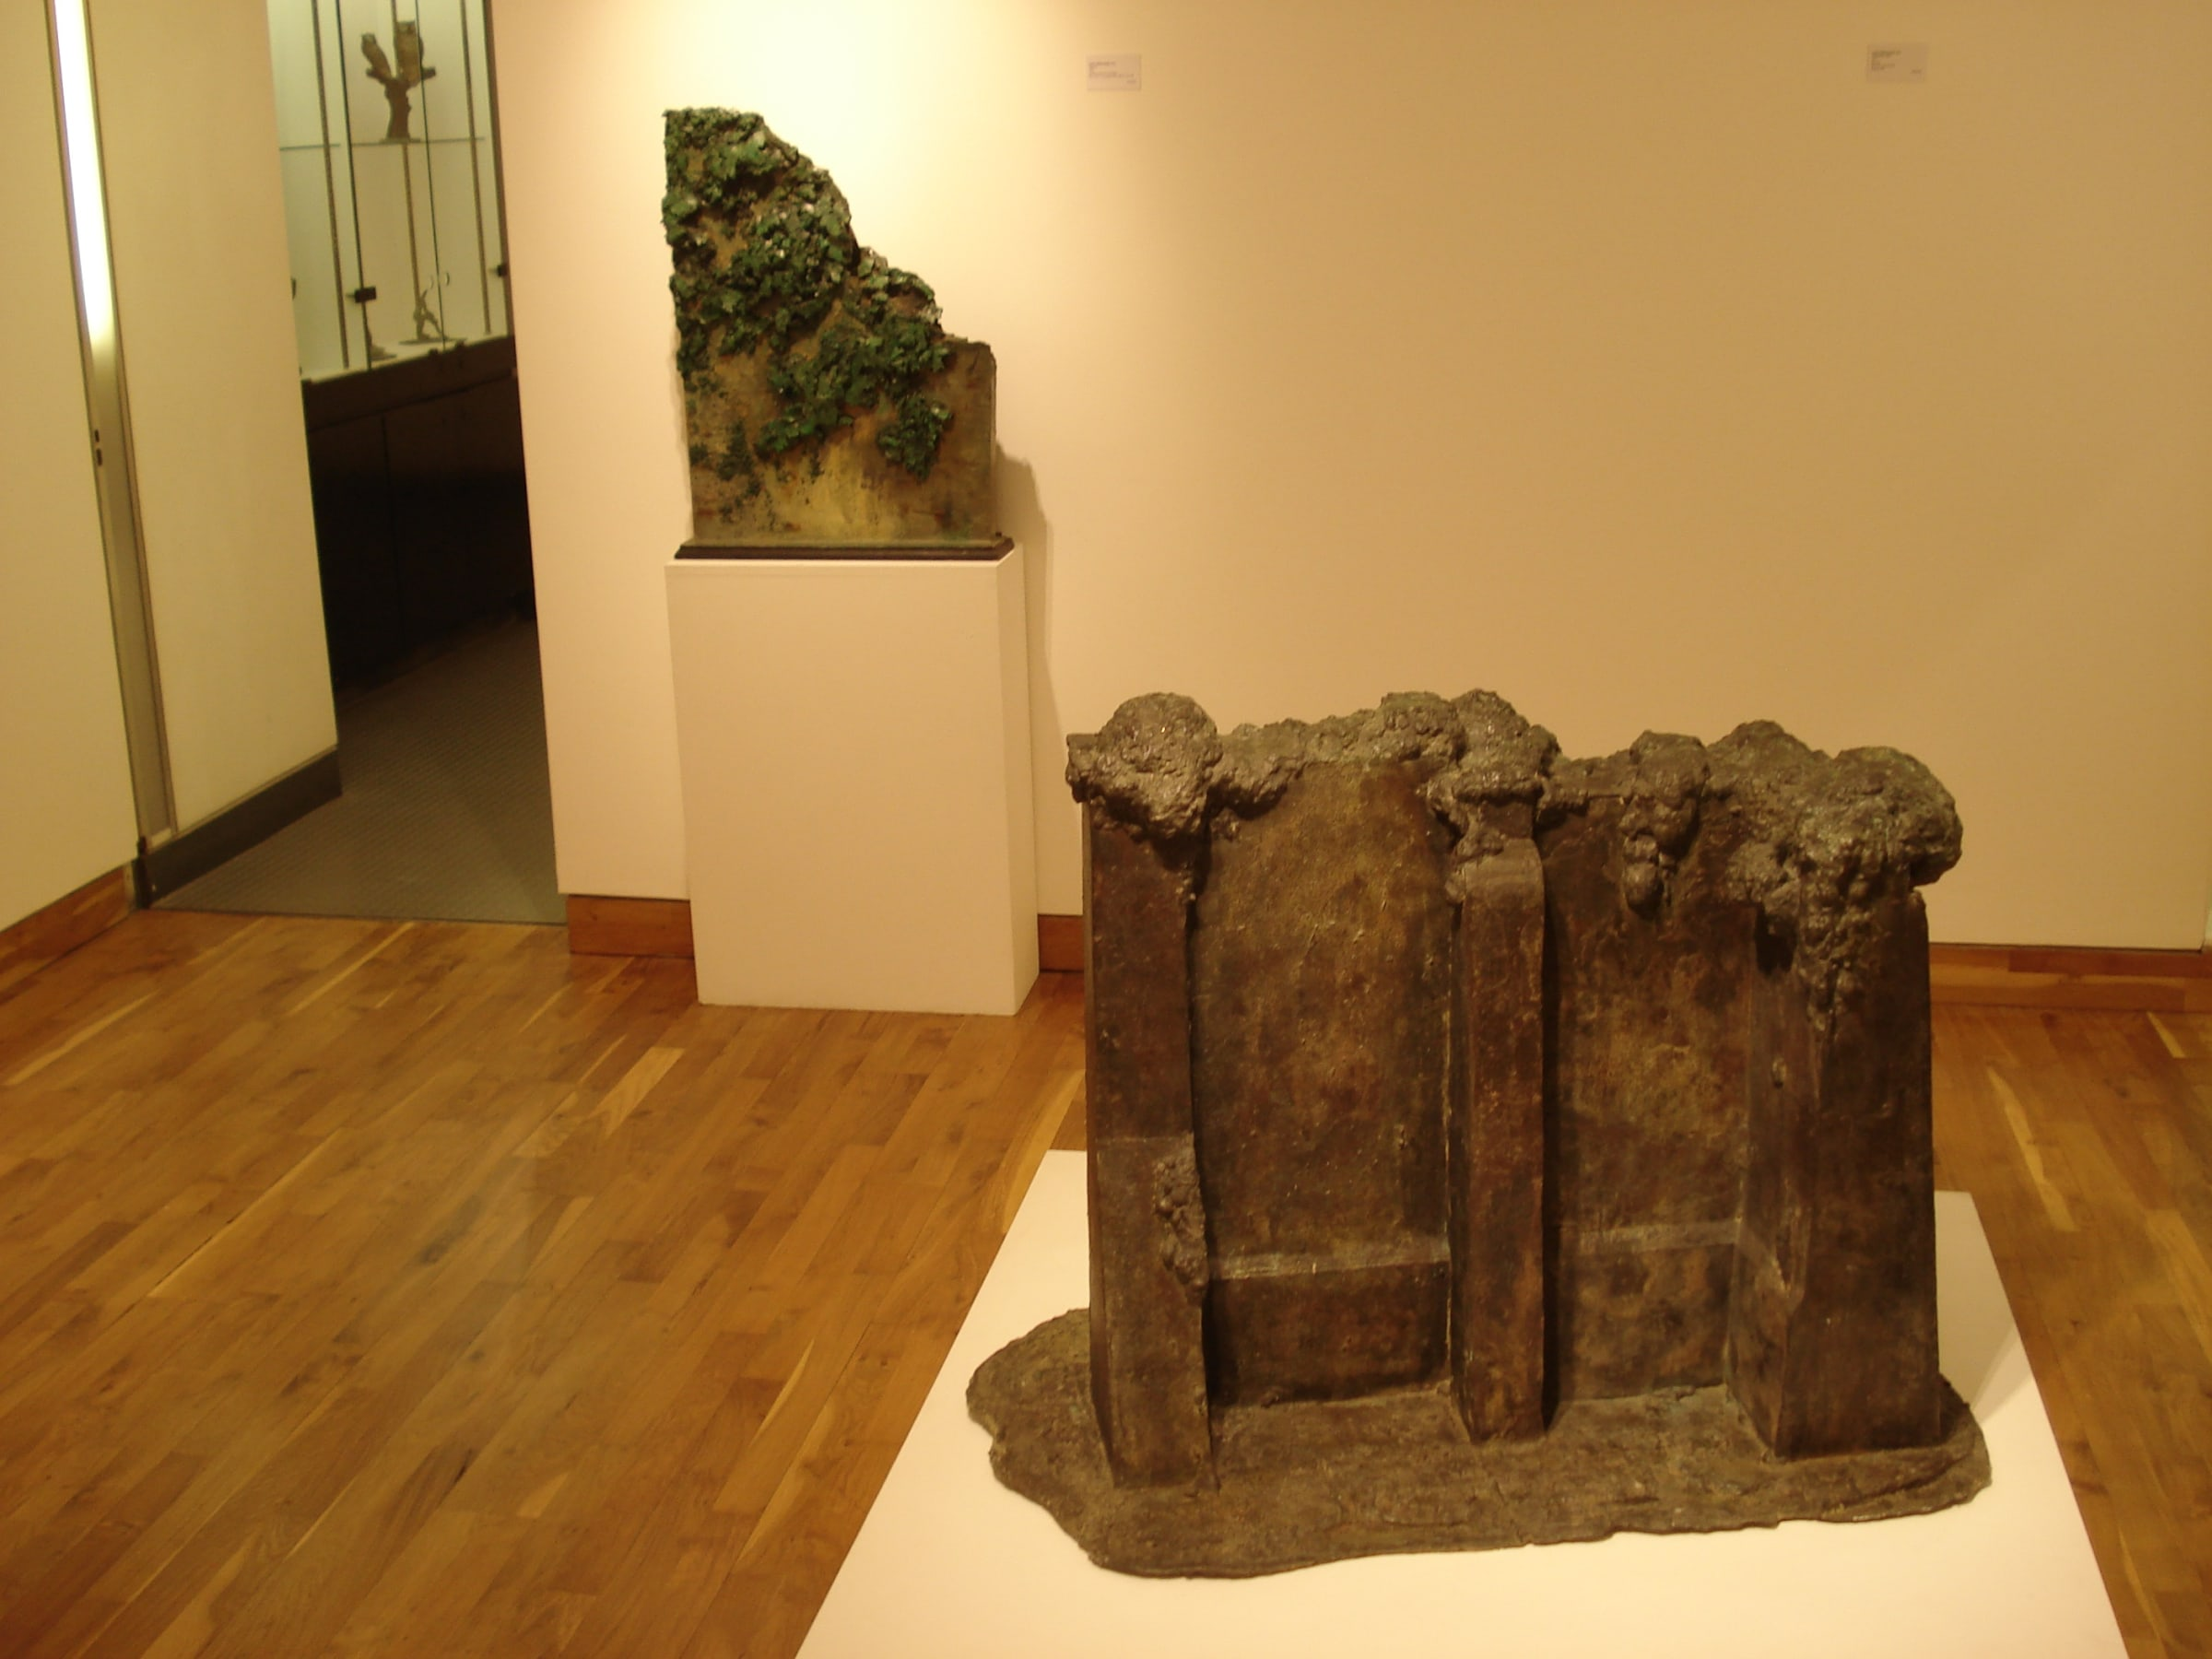 "<span class=""link fancybox-details-link""><a href=""/exhibitions/103/works/image_standalone408/"">View Detail Page</a></span><p>IVOR ABRAHAMS RA 